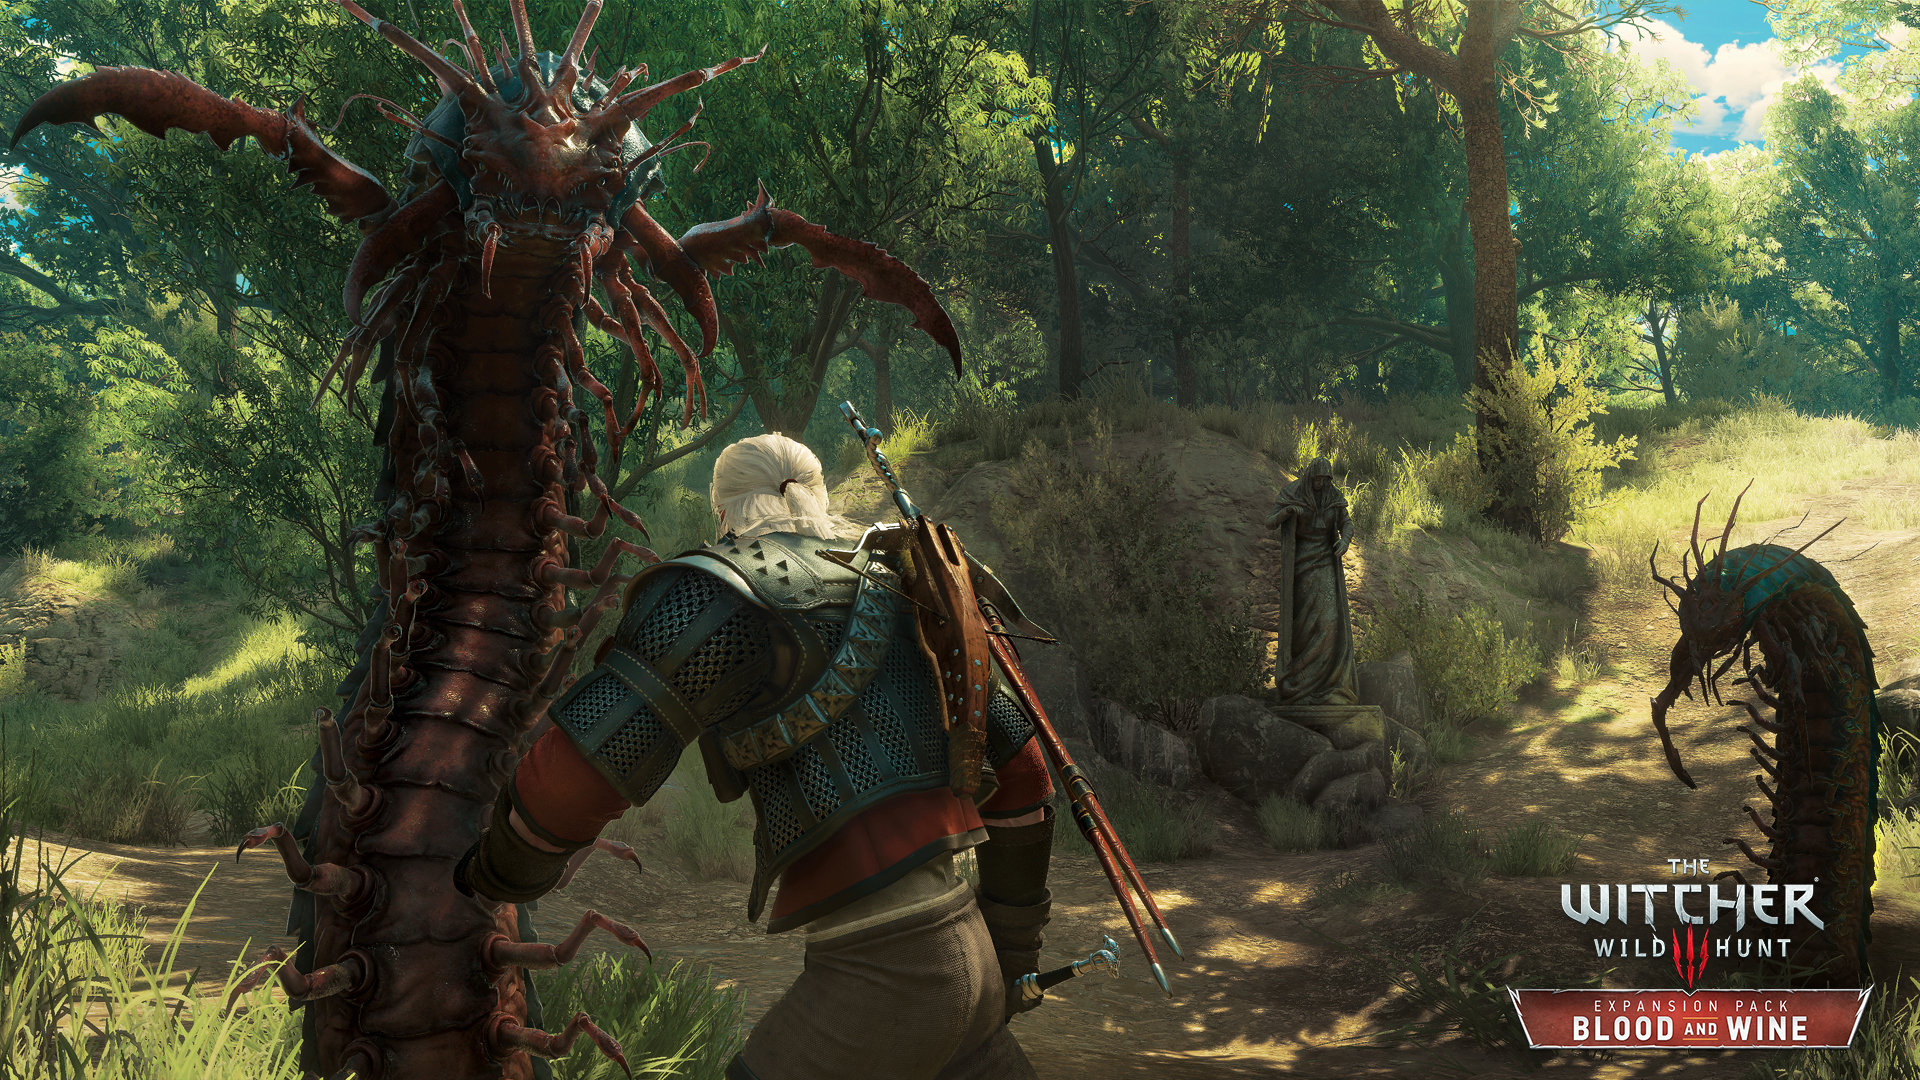 the witcher III: blood and wine